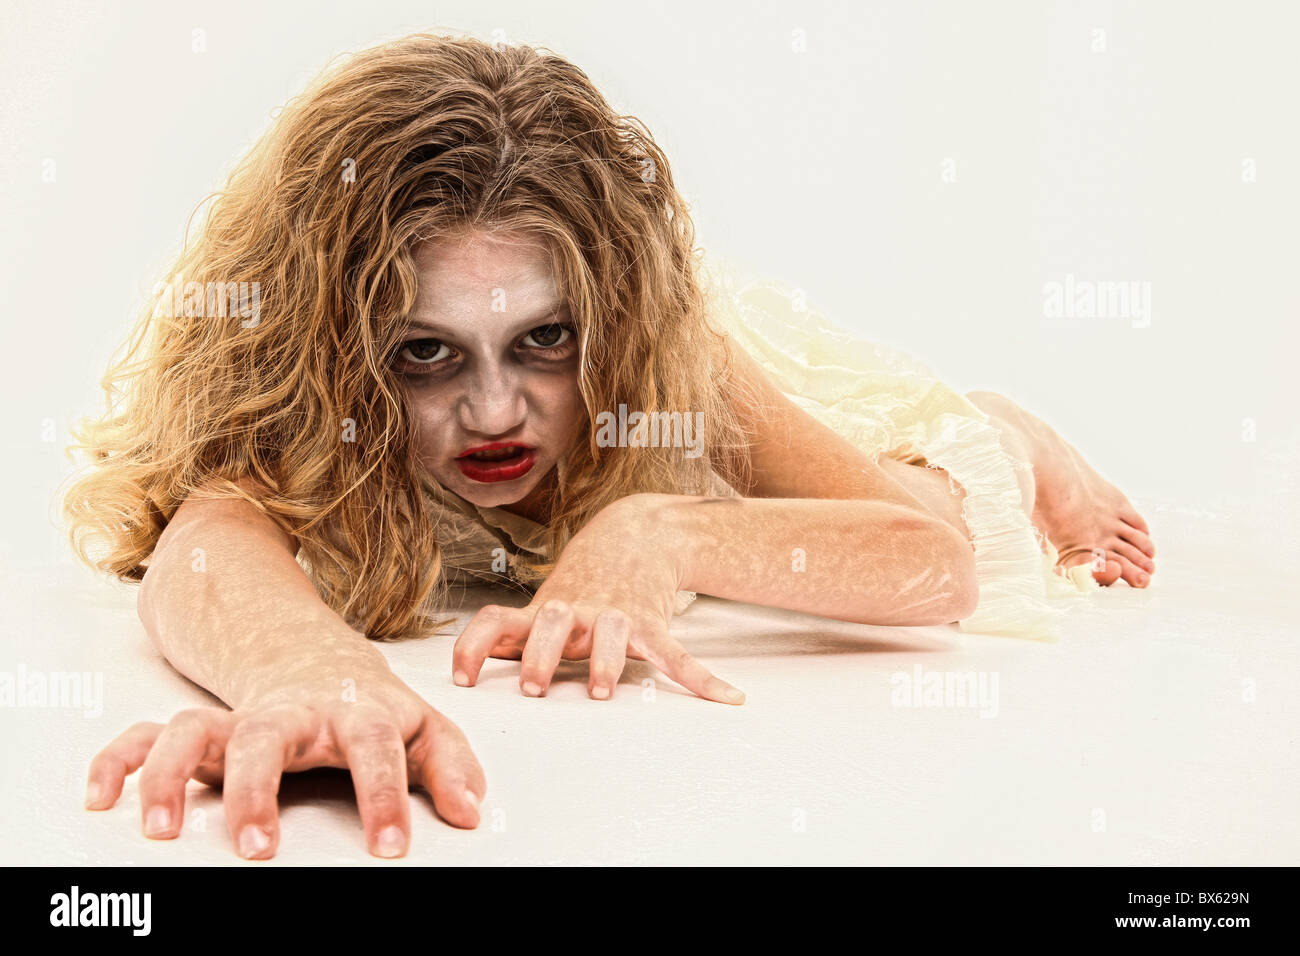 Adorable 7 Year Old Girl In Zombie Costume Over White Background